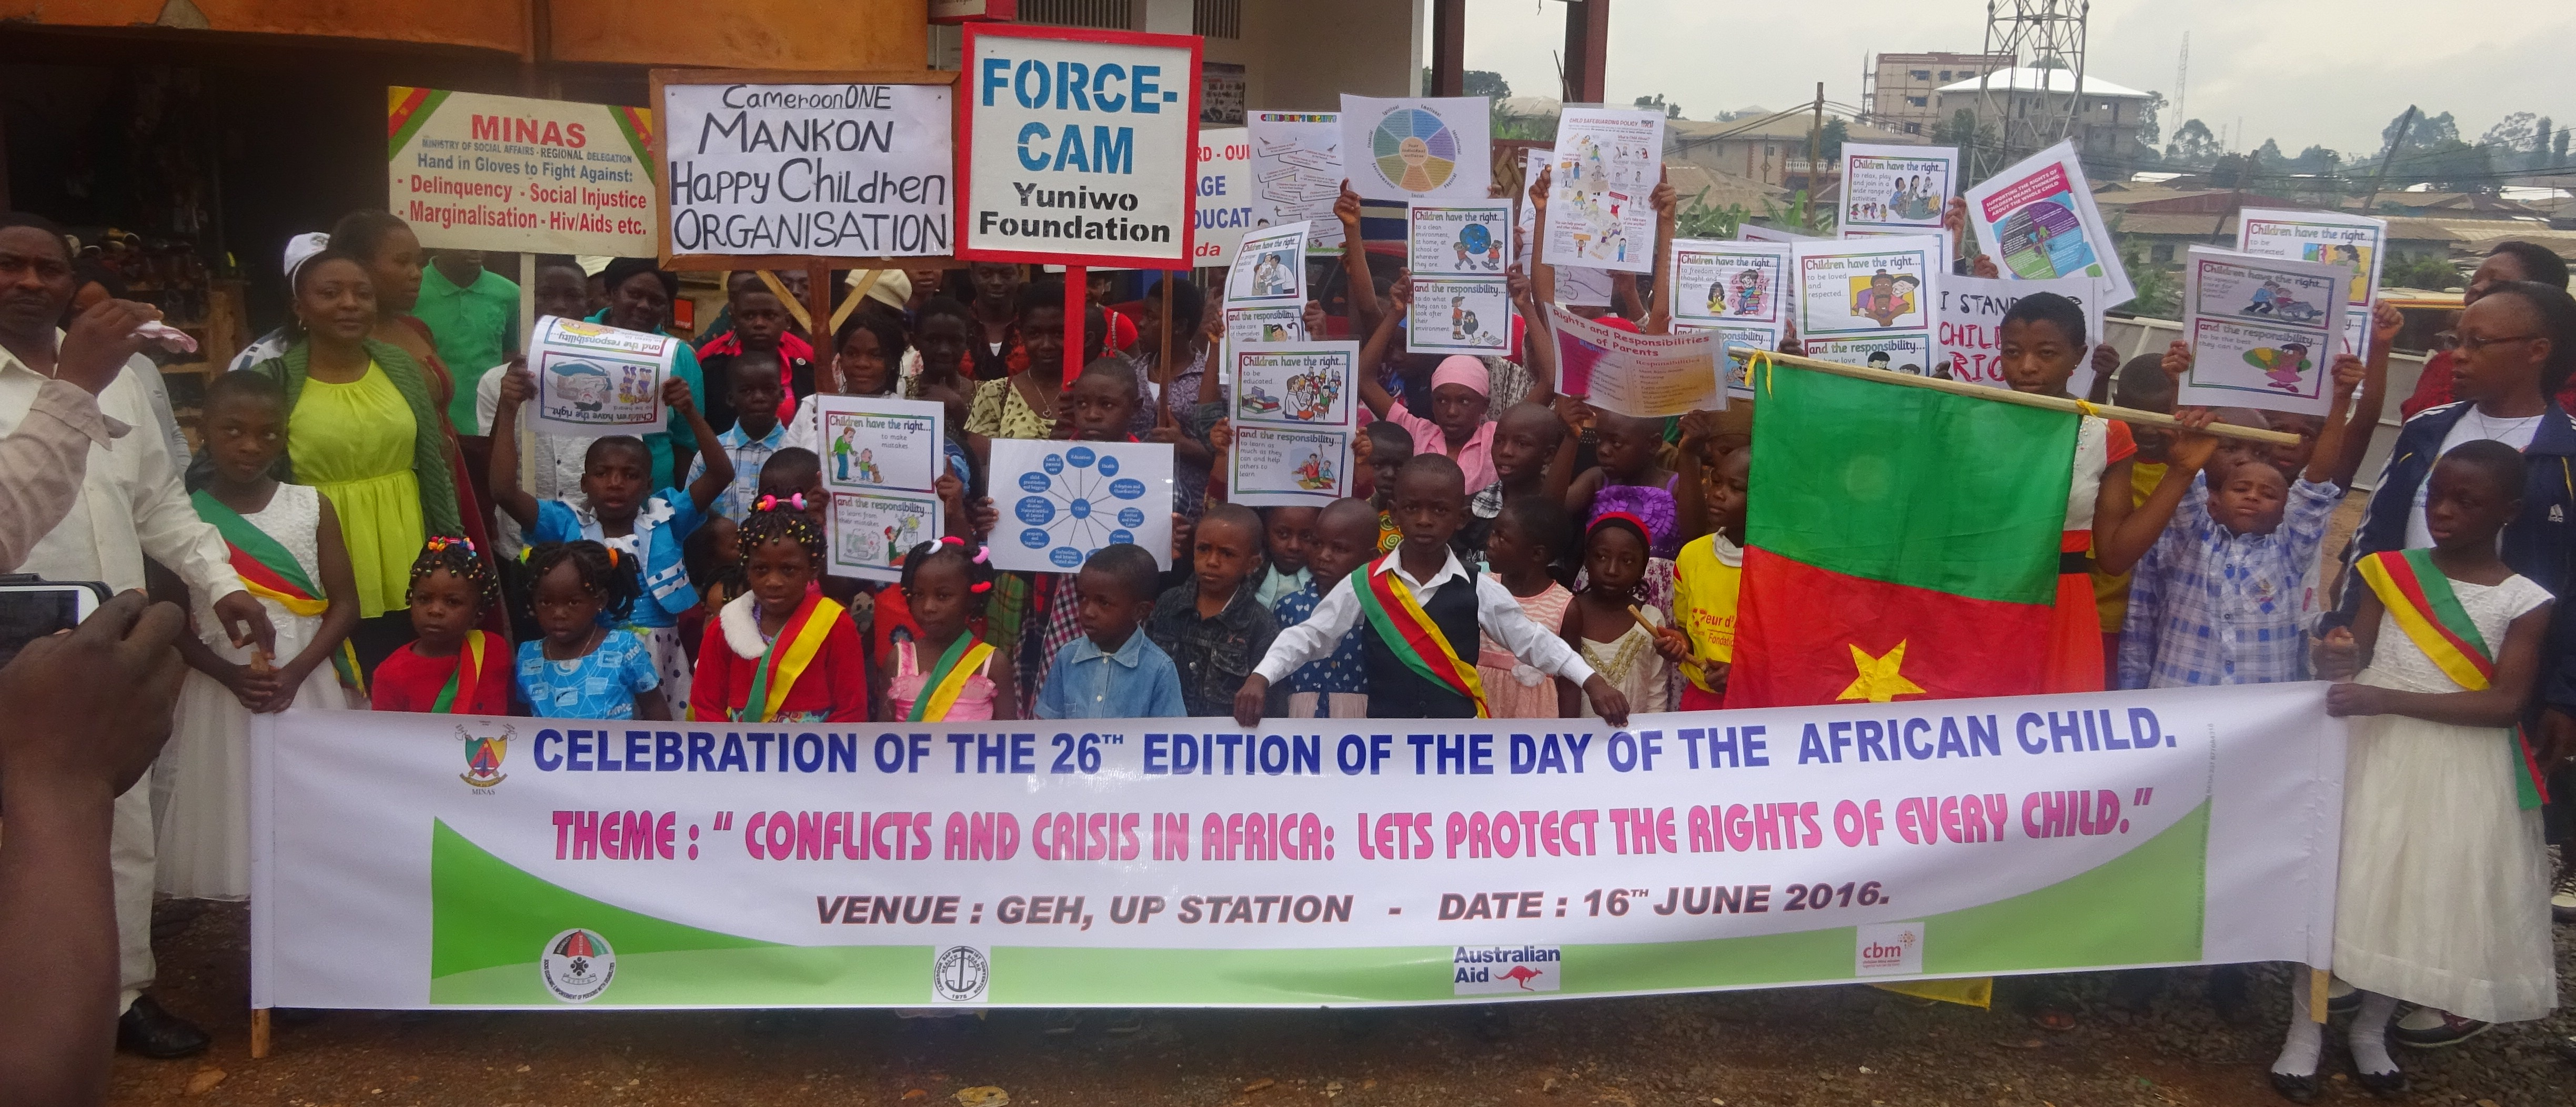 Day of the African Child Celeberated